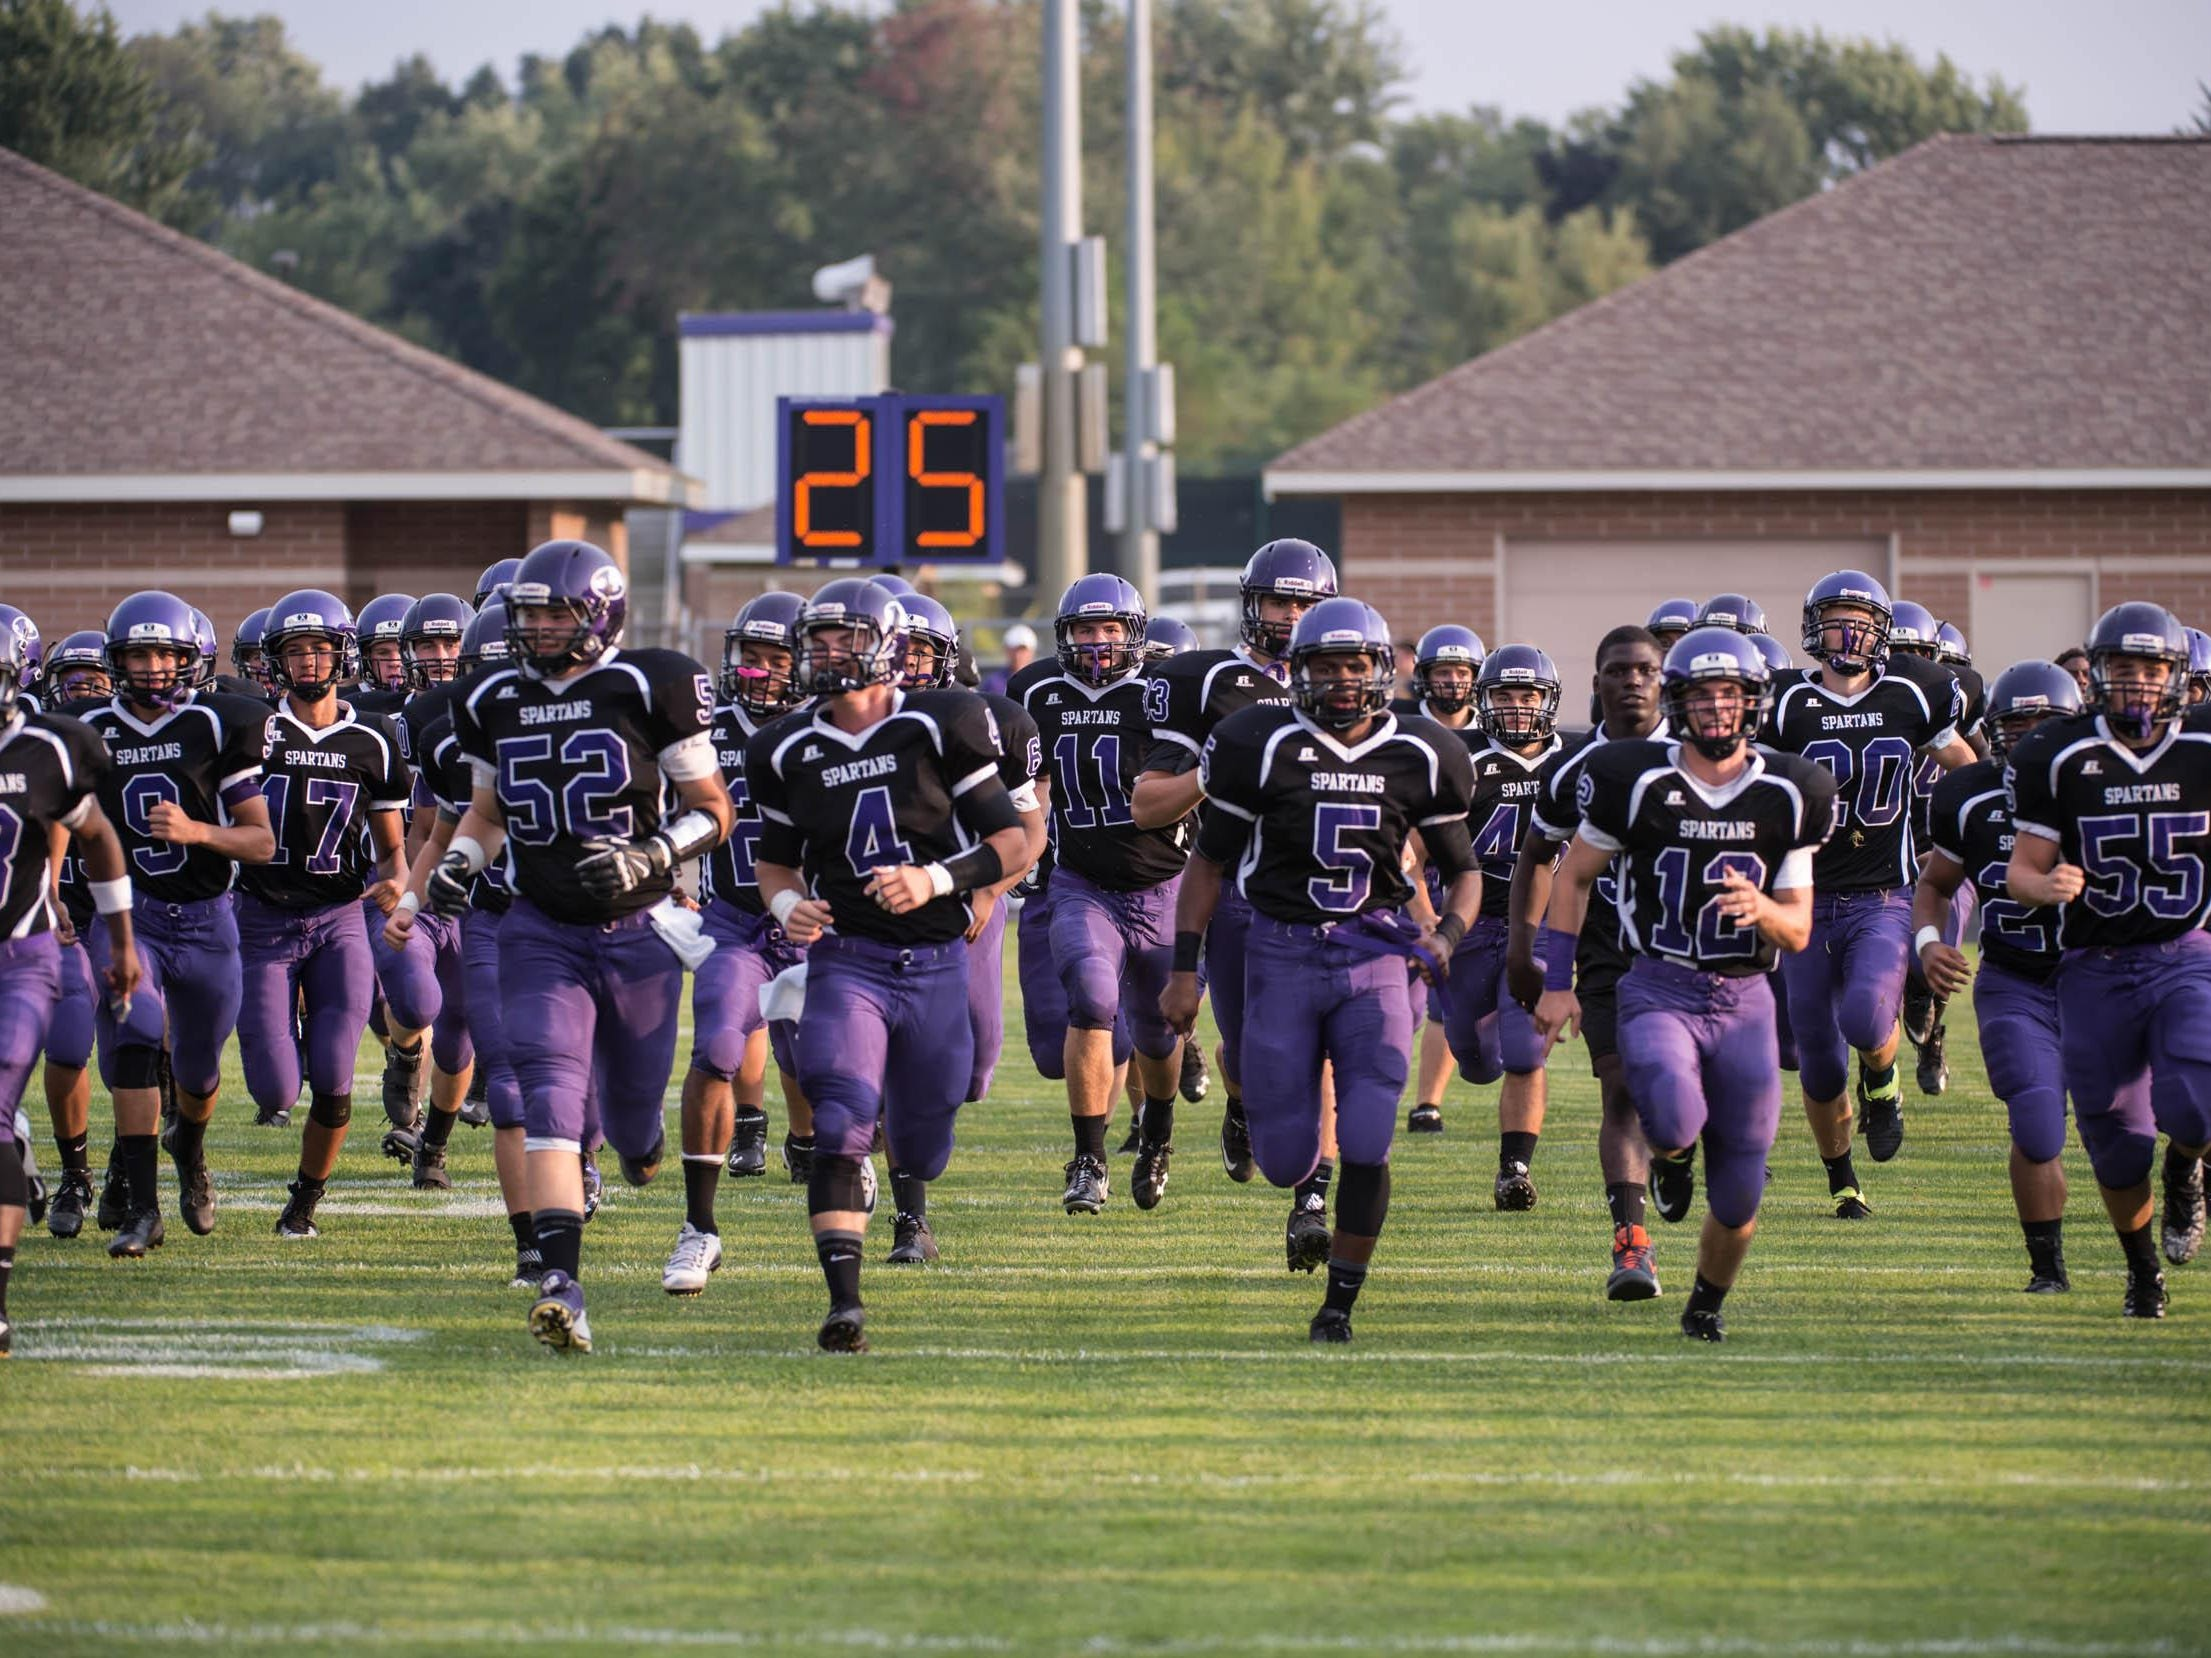 Lakeview will travel to Battle Creek Central in a key city rivalry game in Week 3.